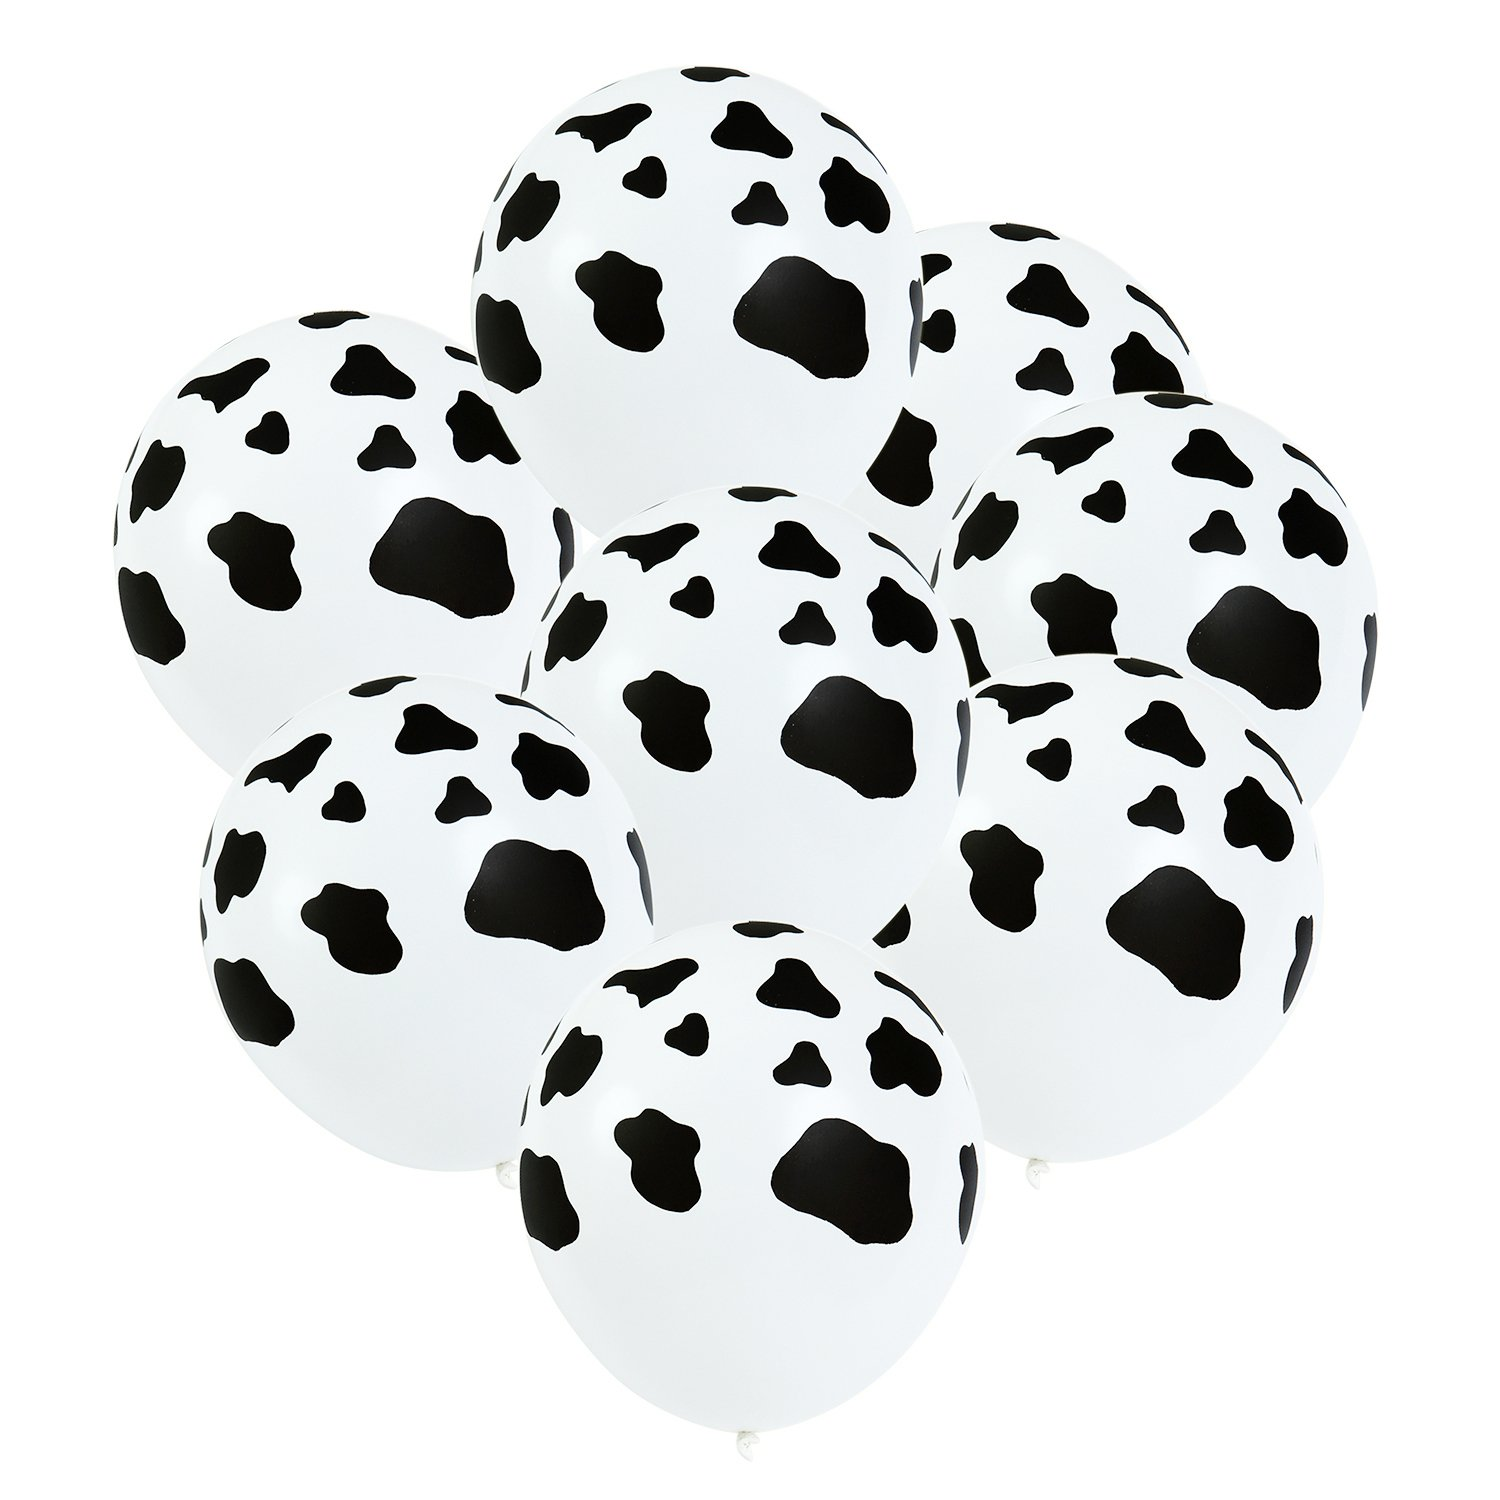 Resinta 80 Pieces 12 Inches Cow Print Balloons Latex Farm Animal Black and White for Children's Birthday Home Craft Decoration